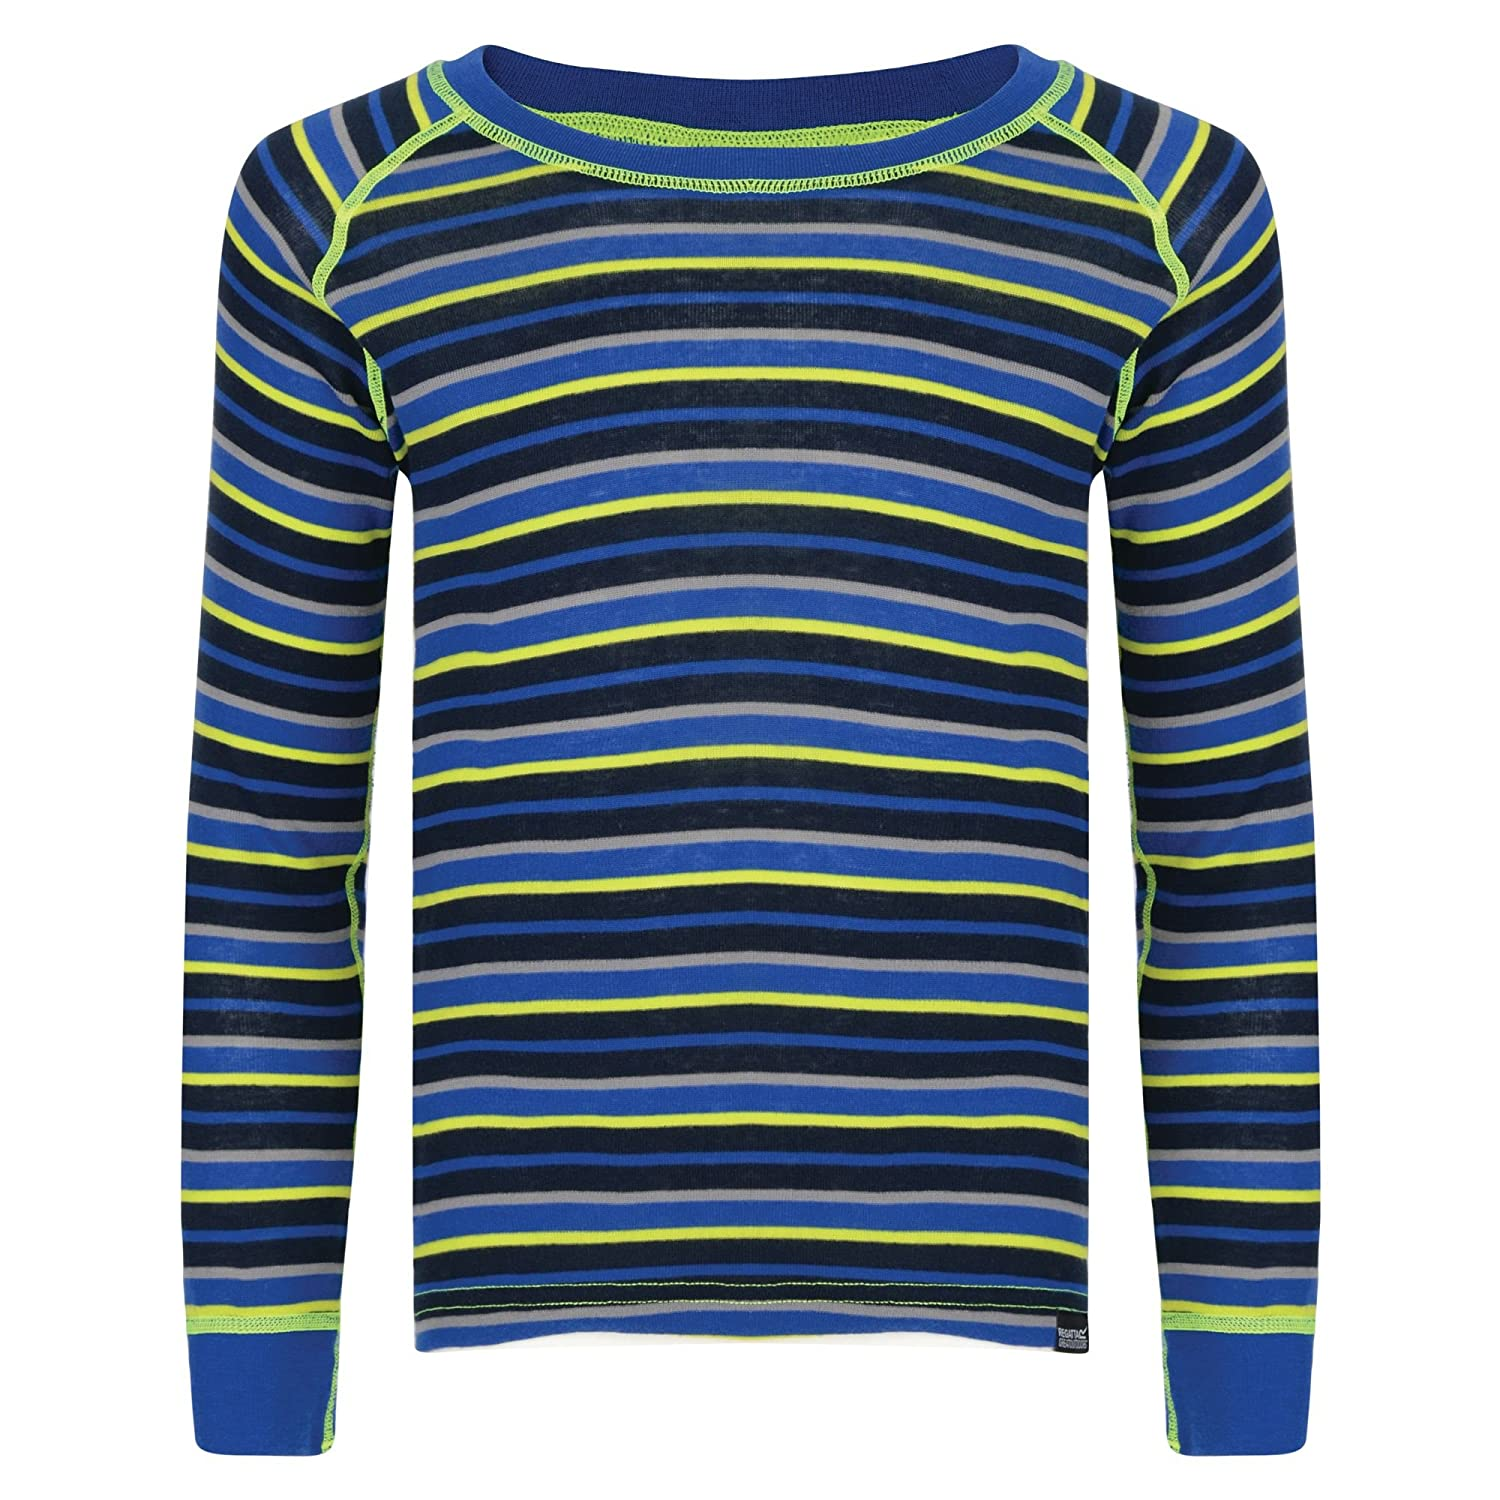 Regatta Great Outdoors Childrens/Kids Elatus Striped Long Sleeve Base Layer Shirt